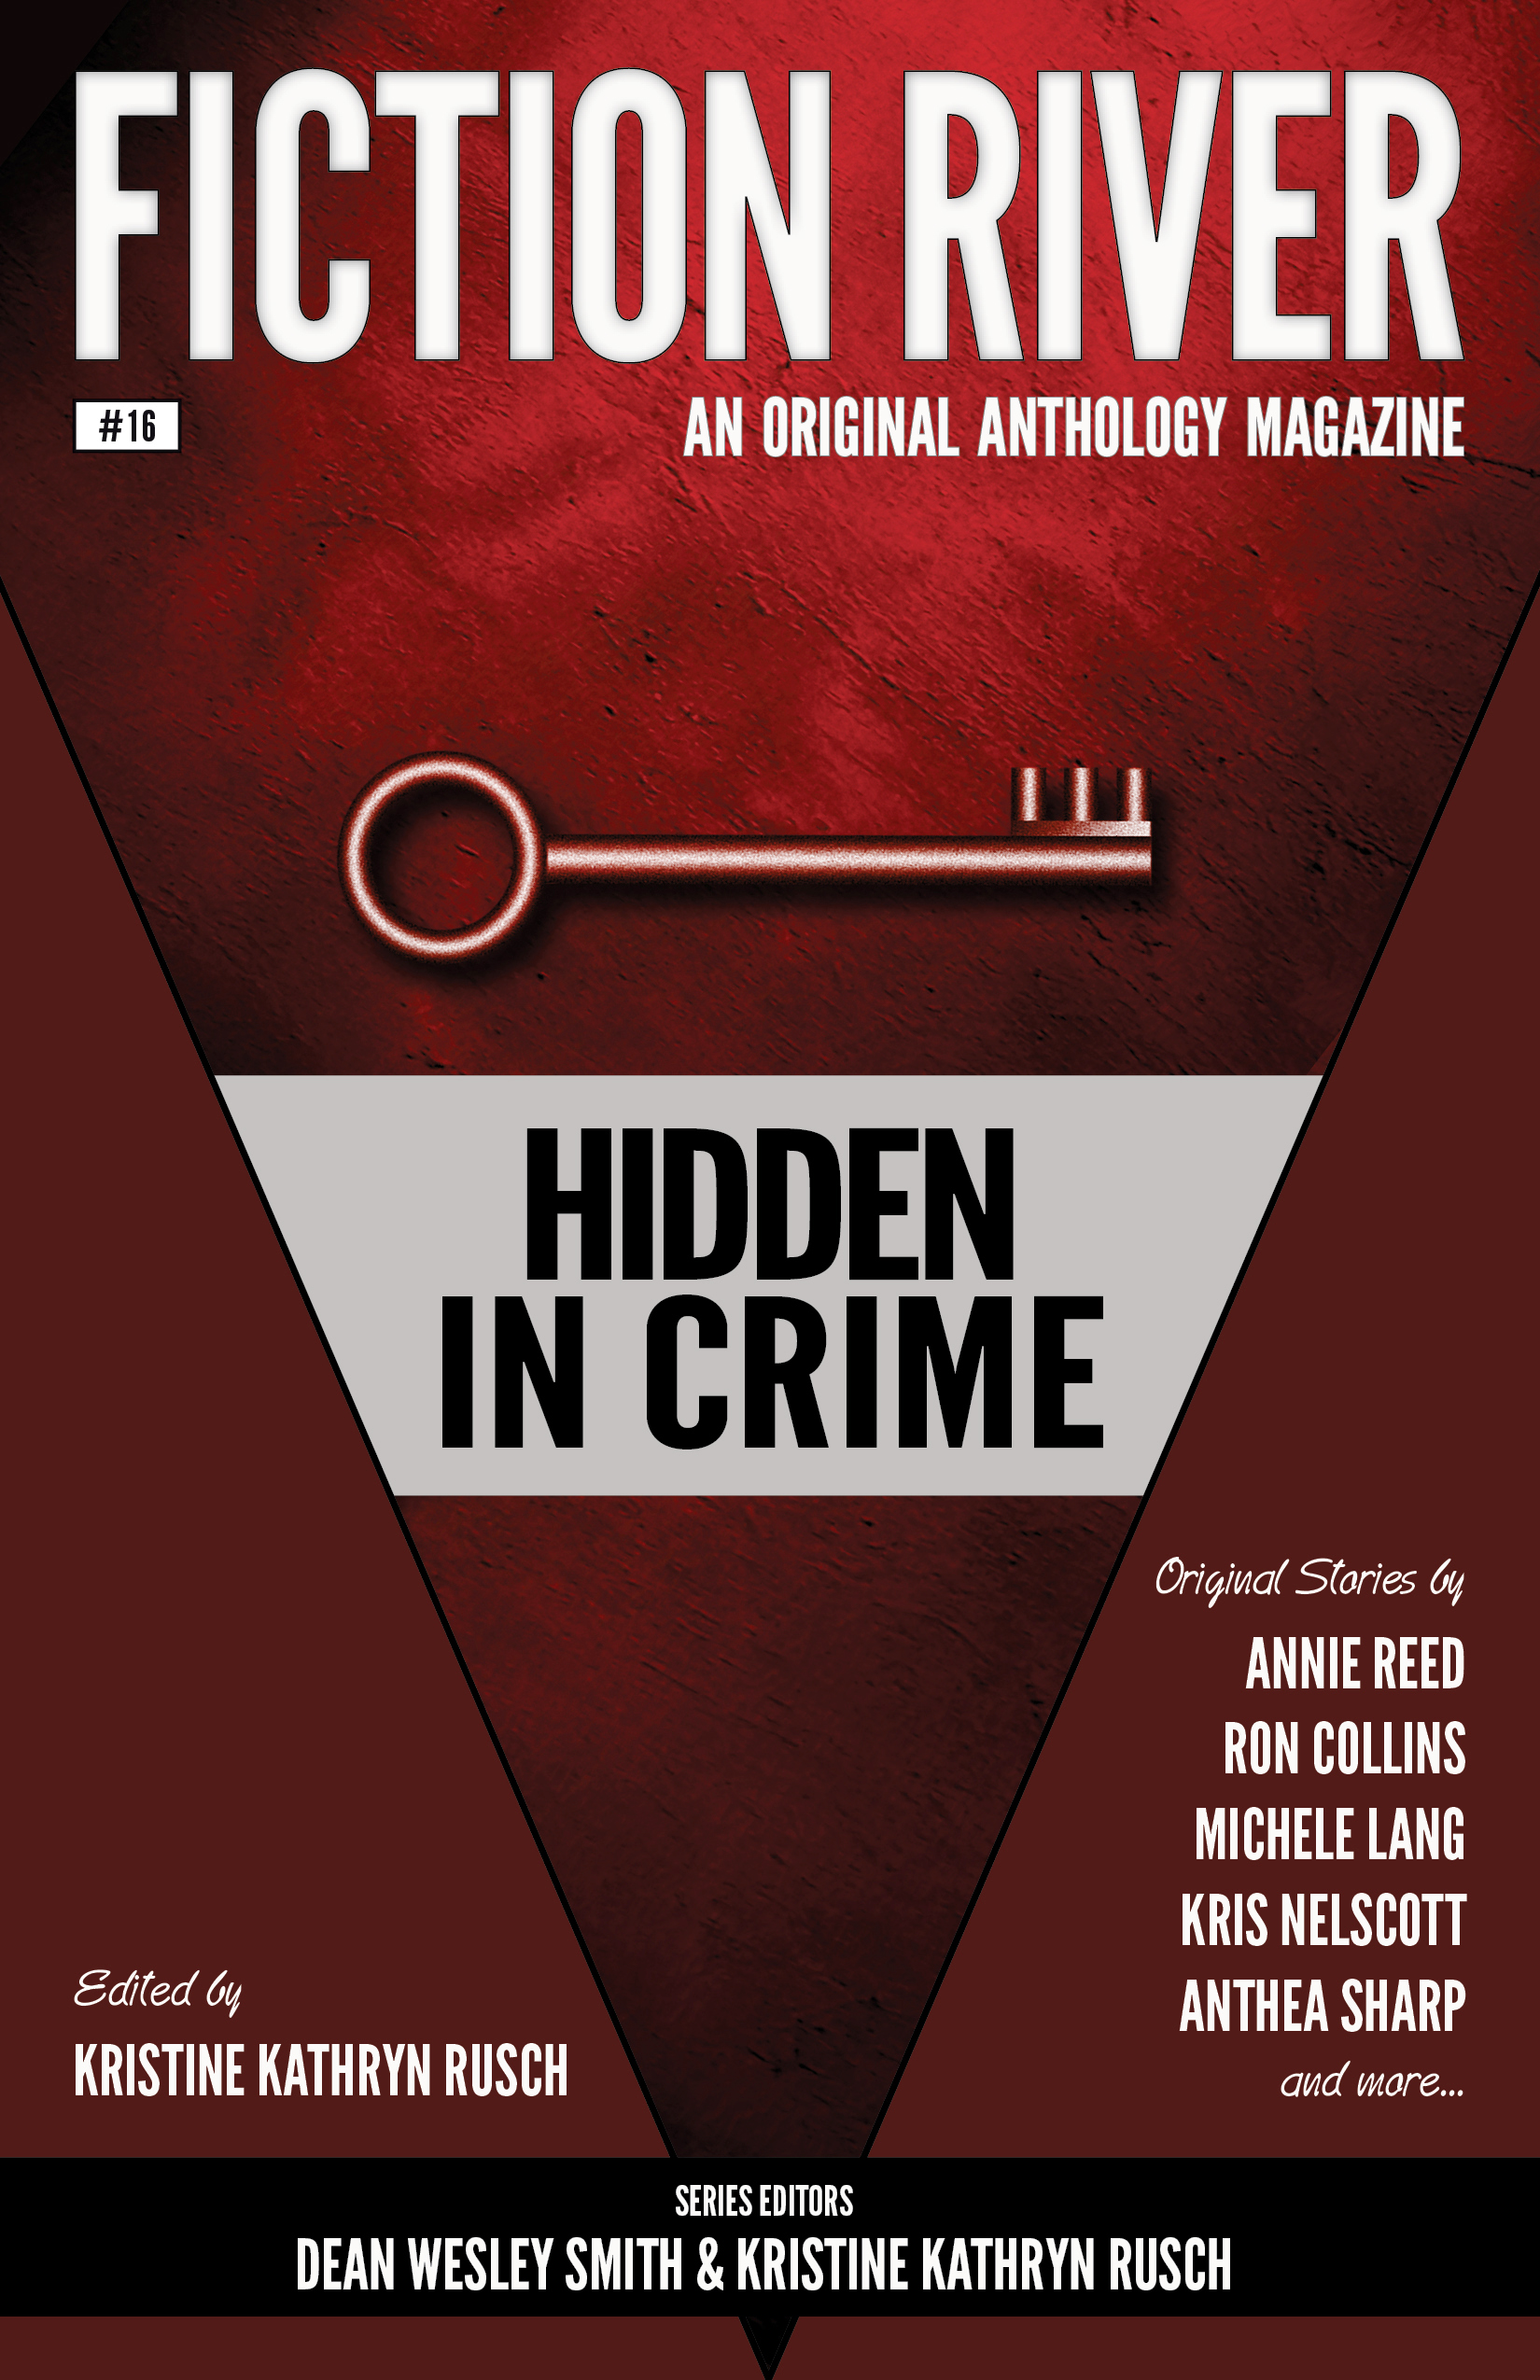 FR16 Hidden in Crime ebook cover lighter